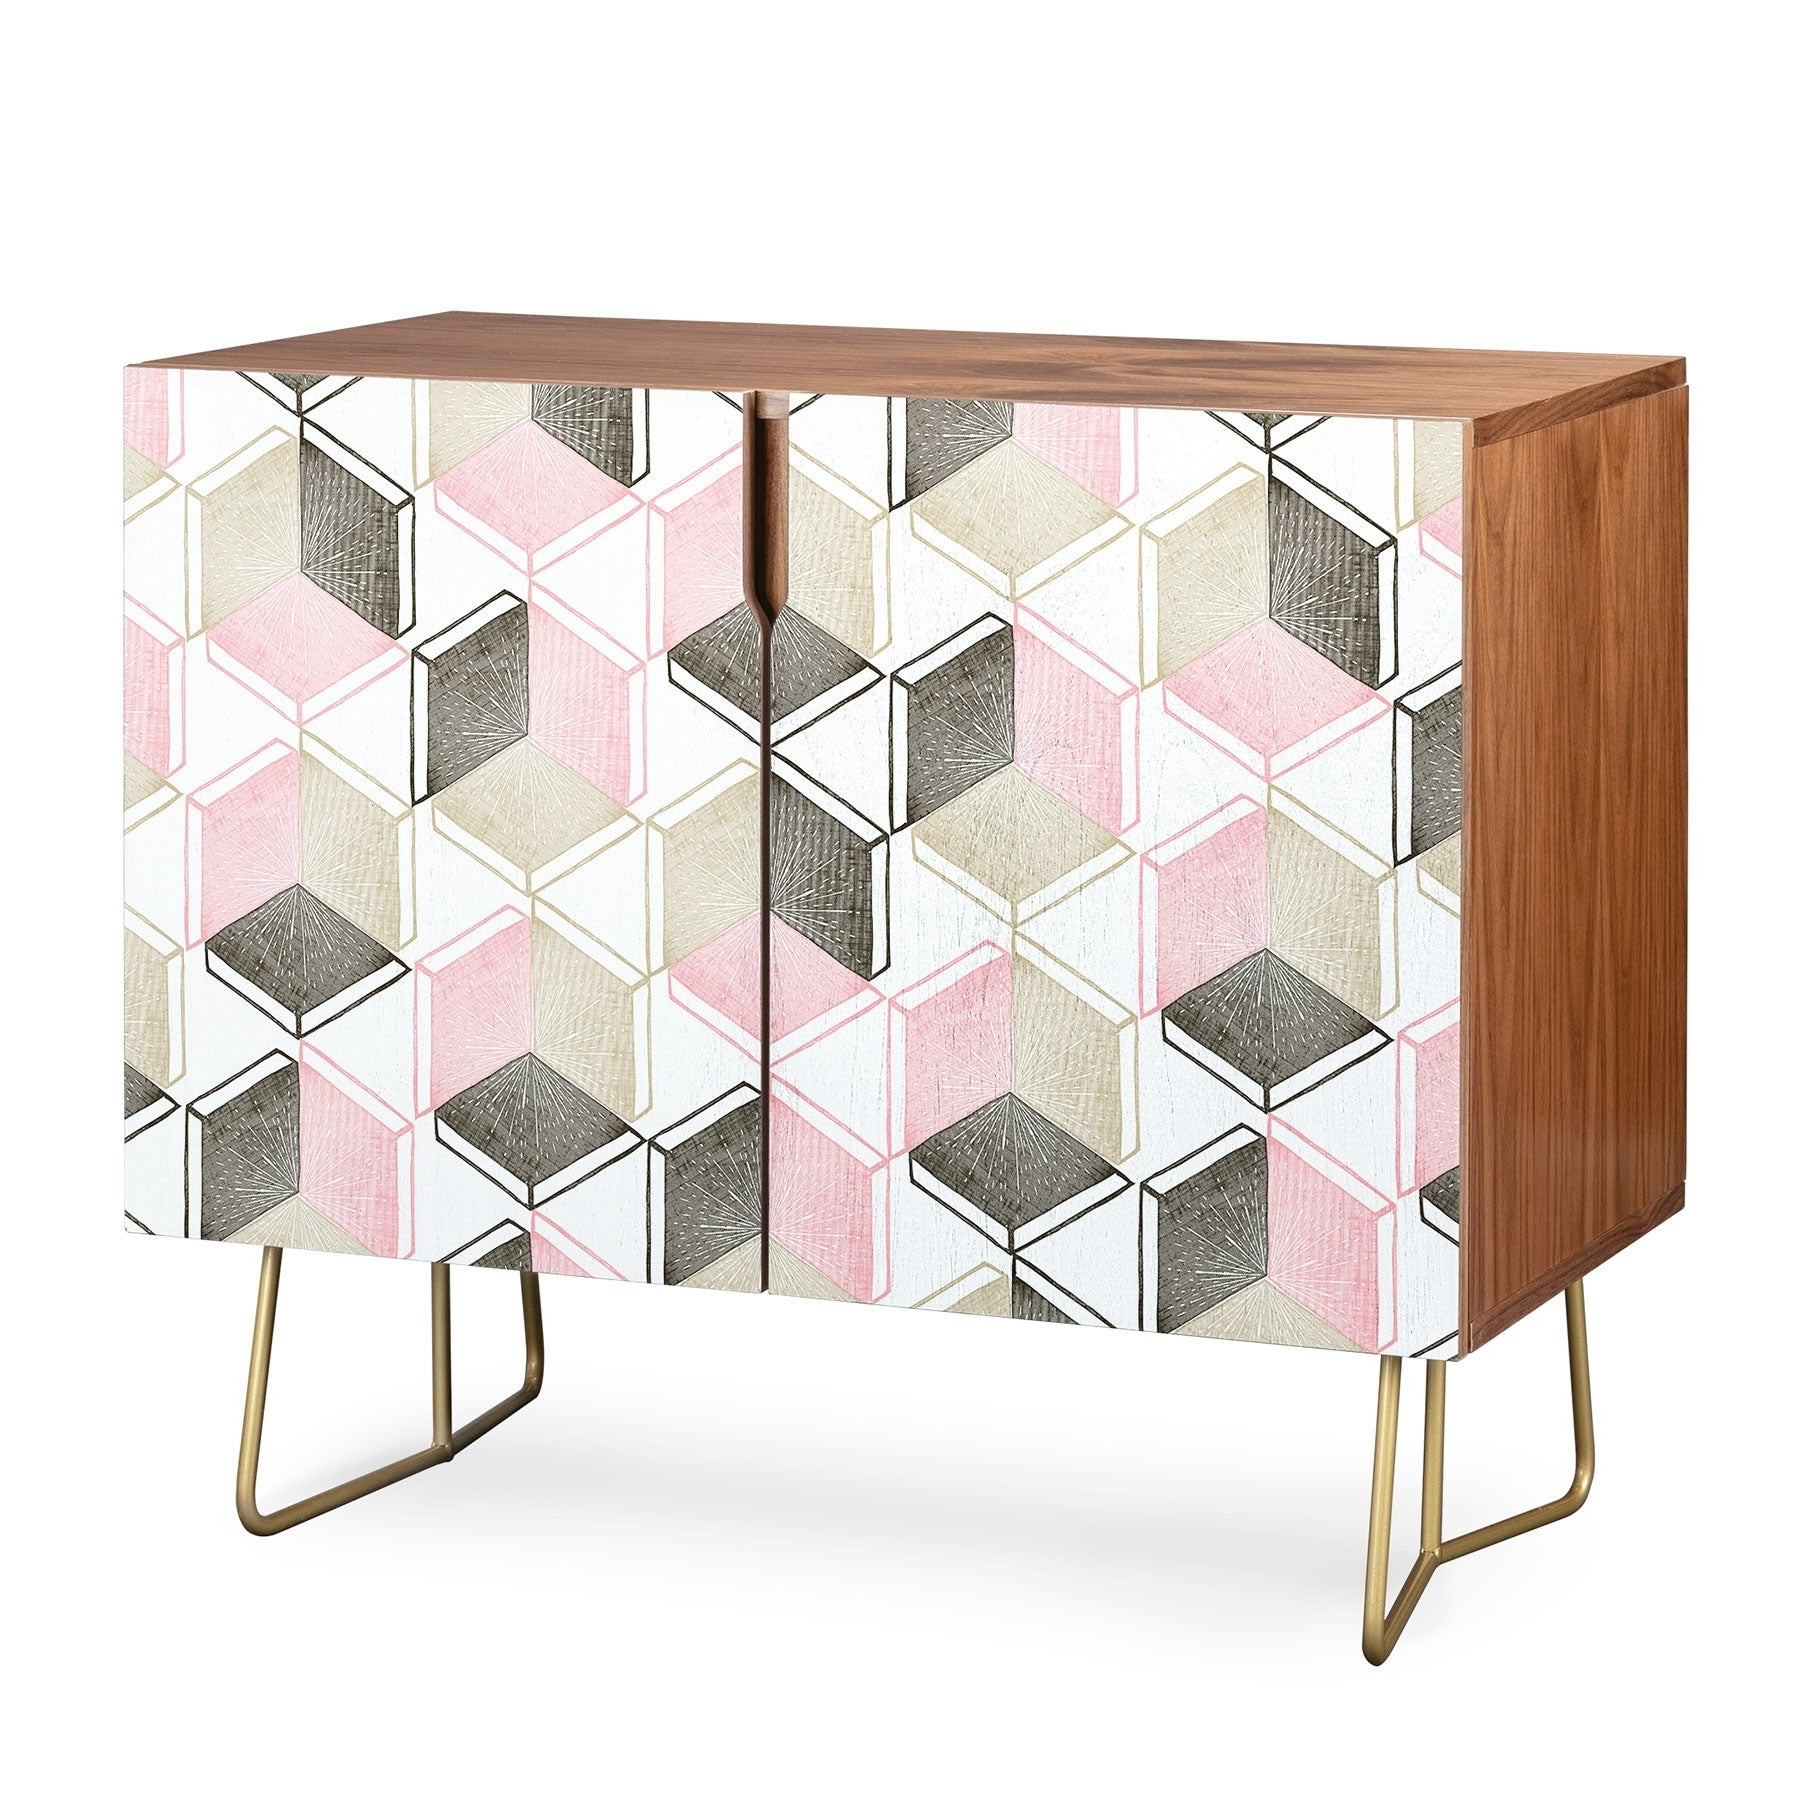 Deny Designs Geometric Shapes Credenza (Birch Or Walnut, 2 Leg Options) In Geometric Shapes Credenzas (View 6 of 20)